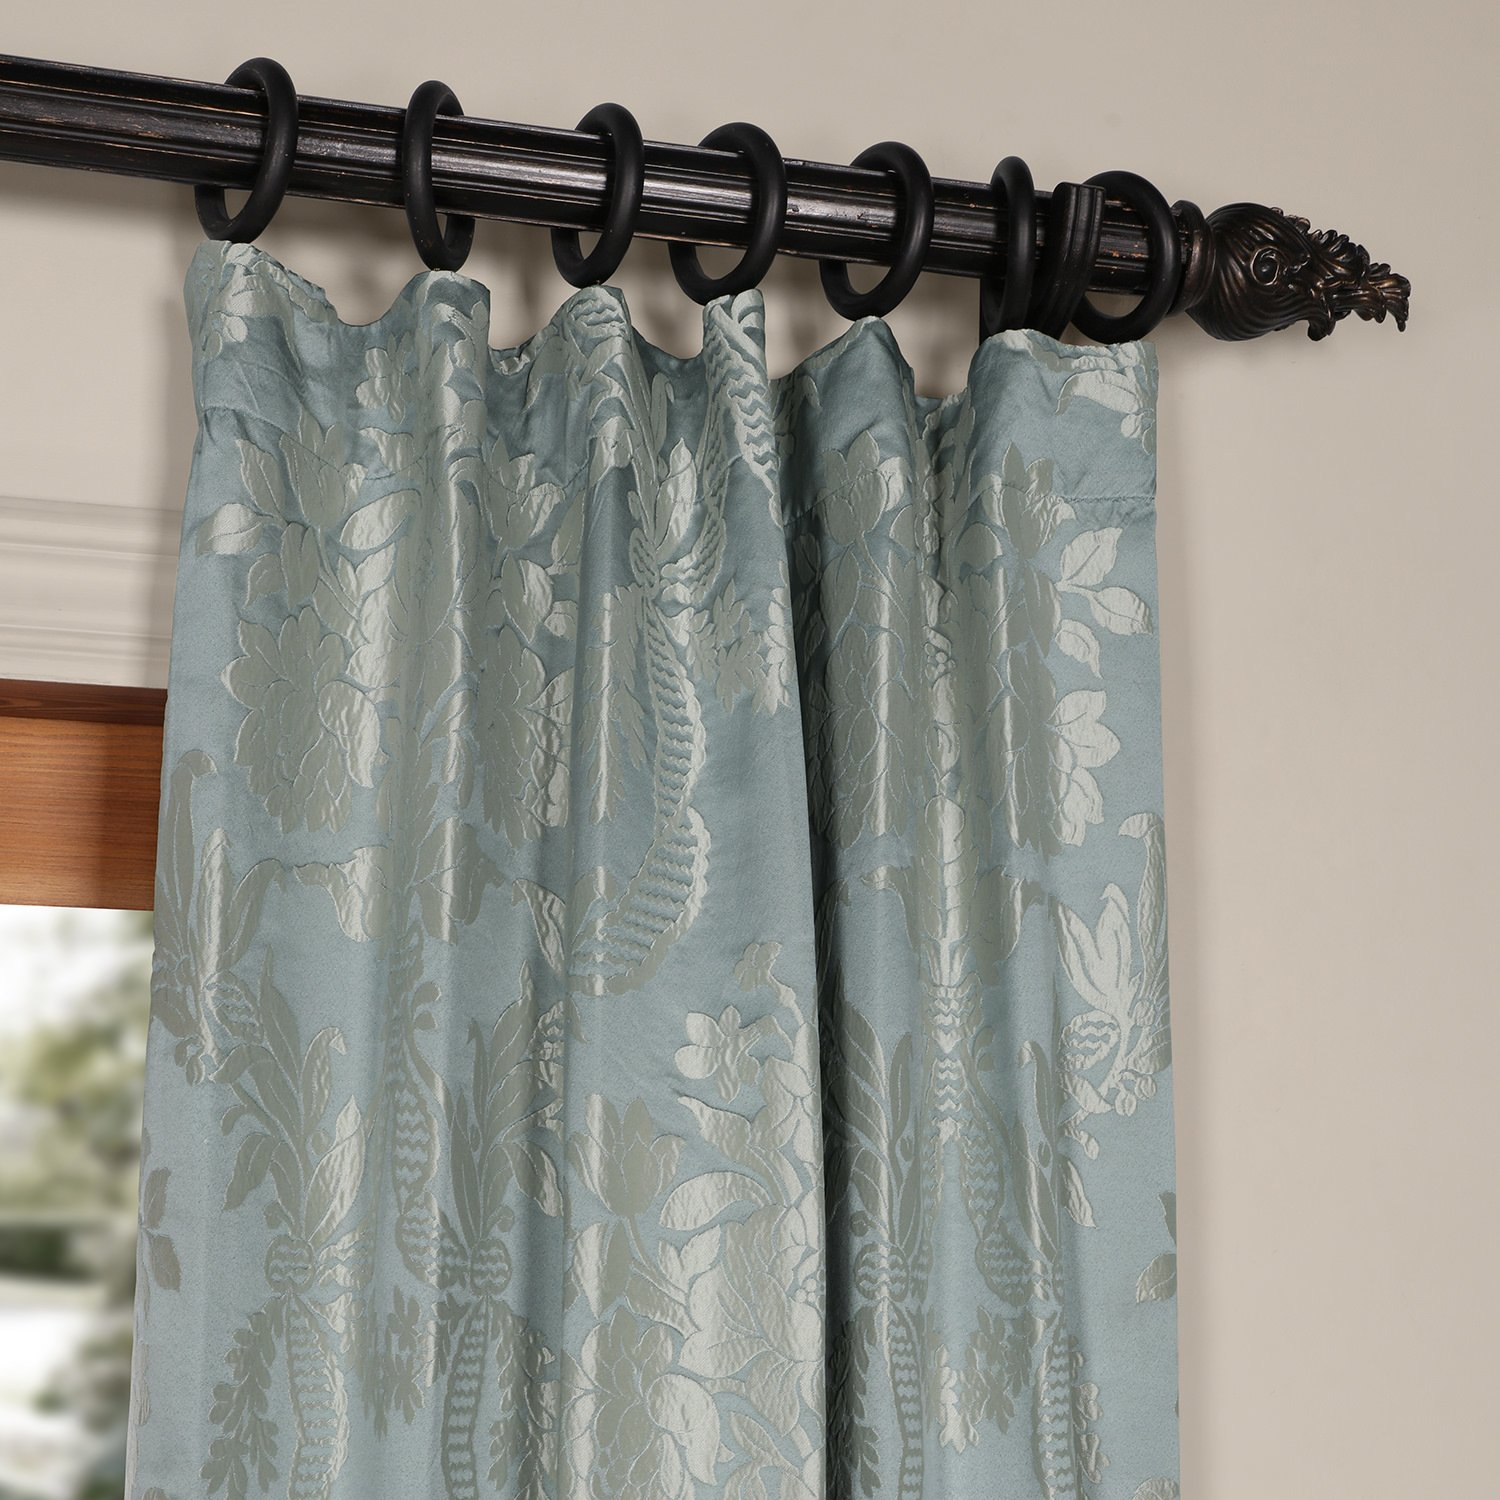 amazoncom half price drapes jqch magdelena faux silk  - amazoncom half price drapes jqch magdelena faux silk jacquardcurtainsteel blue  silver x  home  kitchen